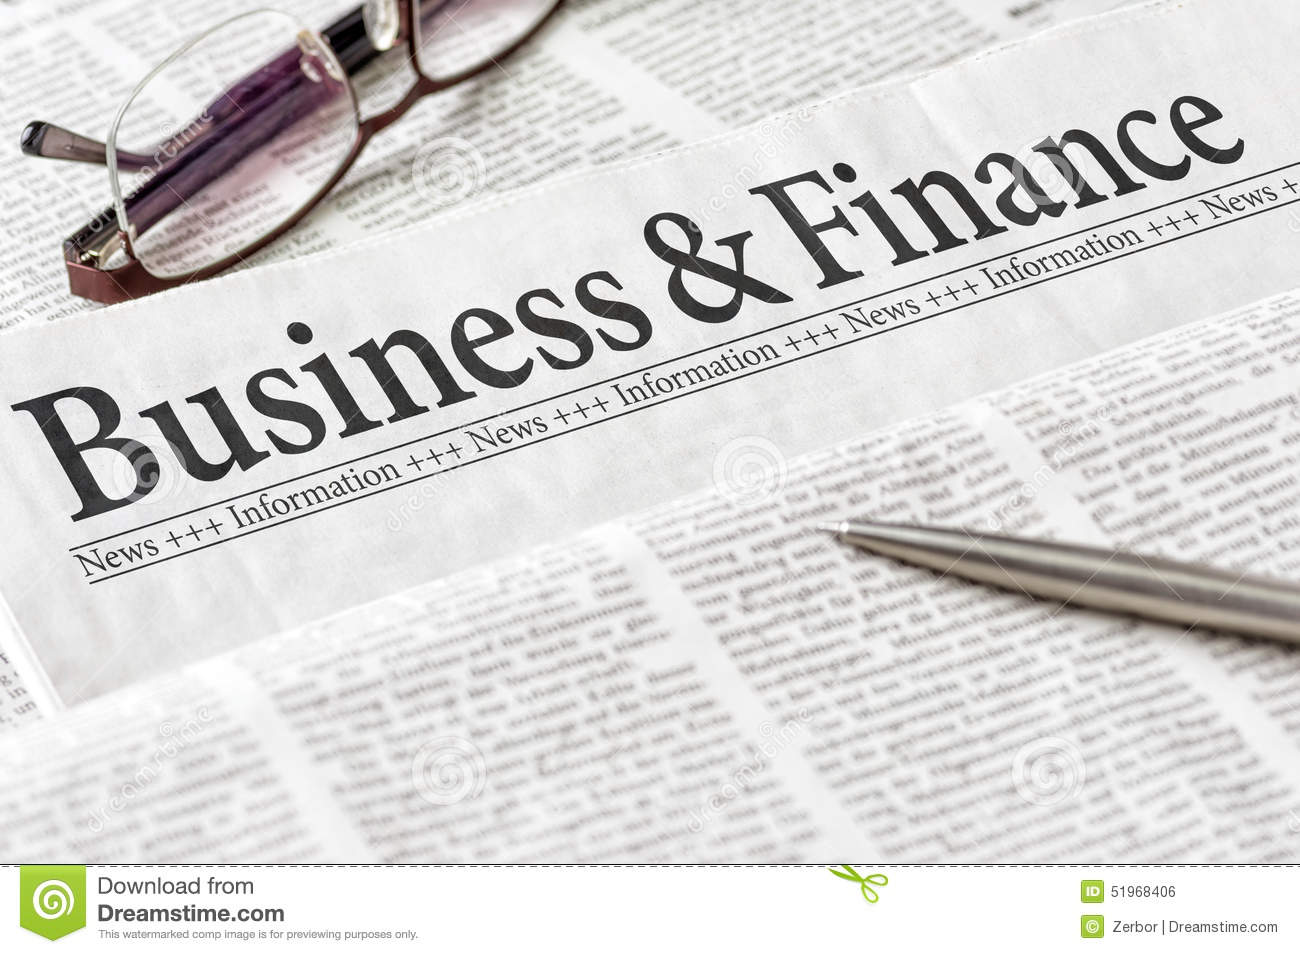 newspaper-headline-business-finance-51968406.jpg